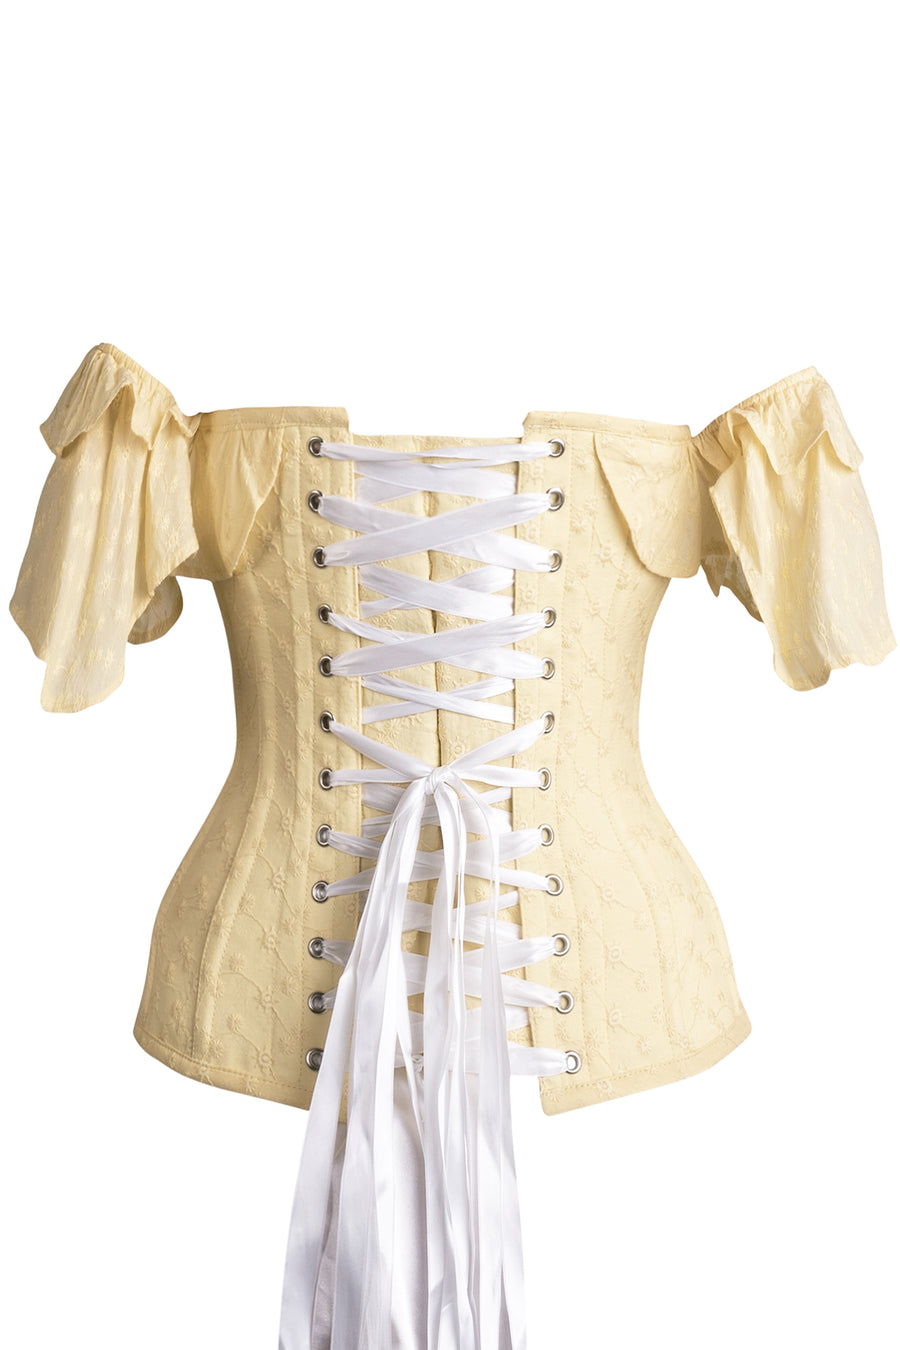 Yellow embroidery anglaise cotton corset top with filled sleeve